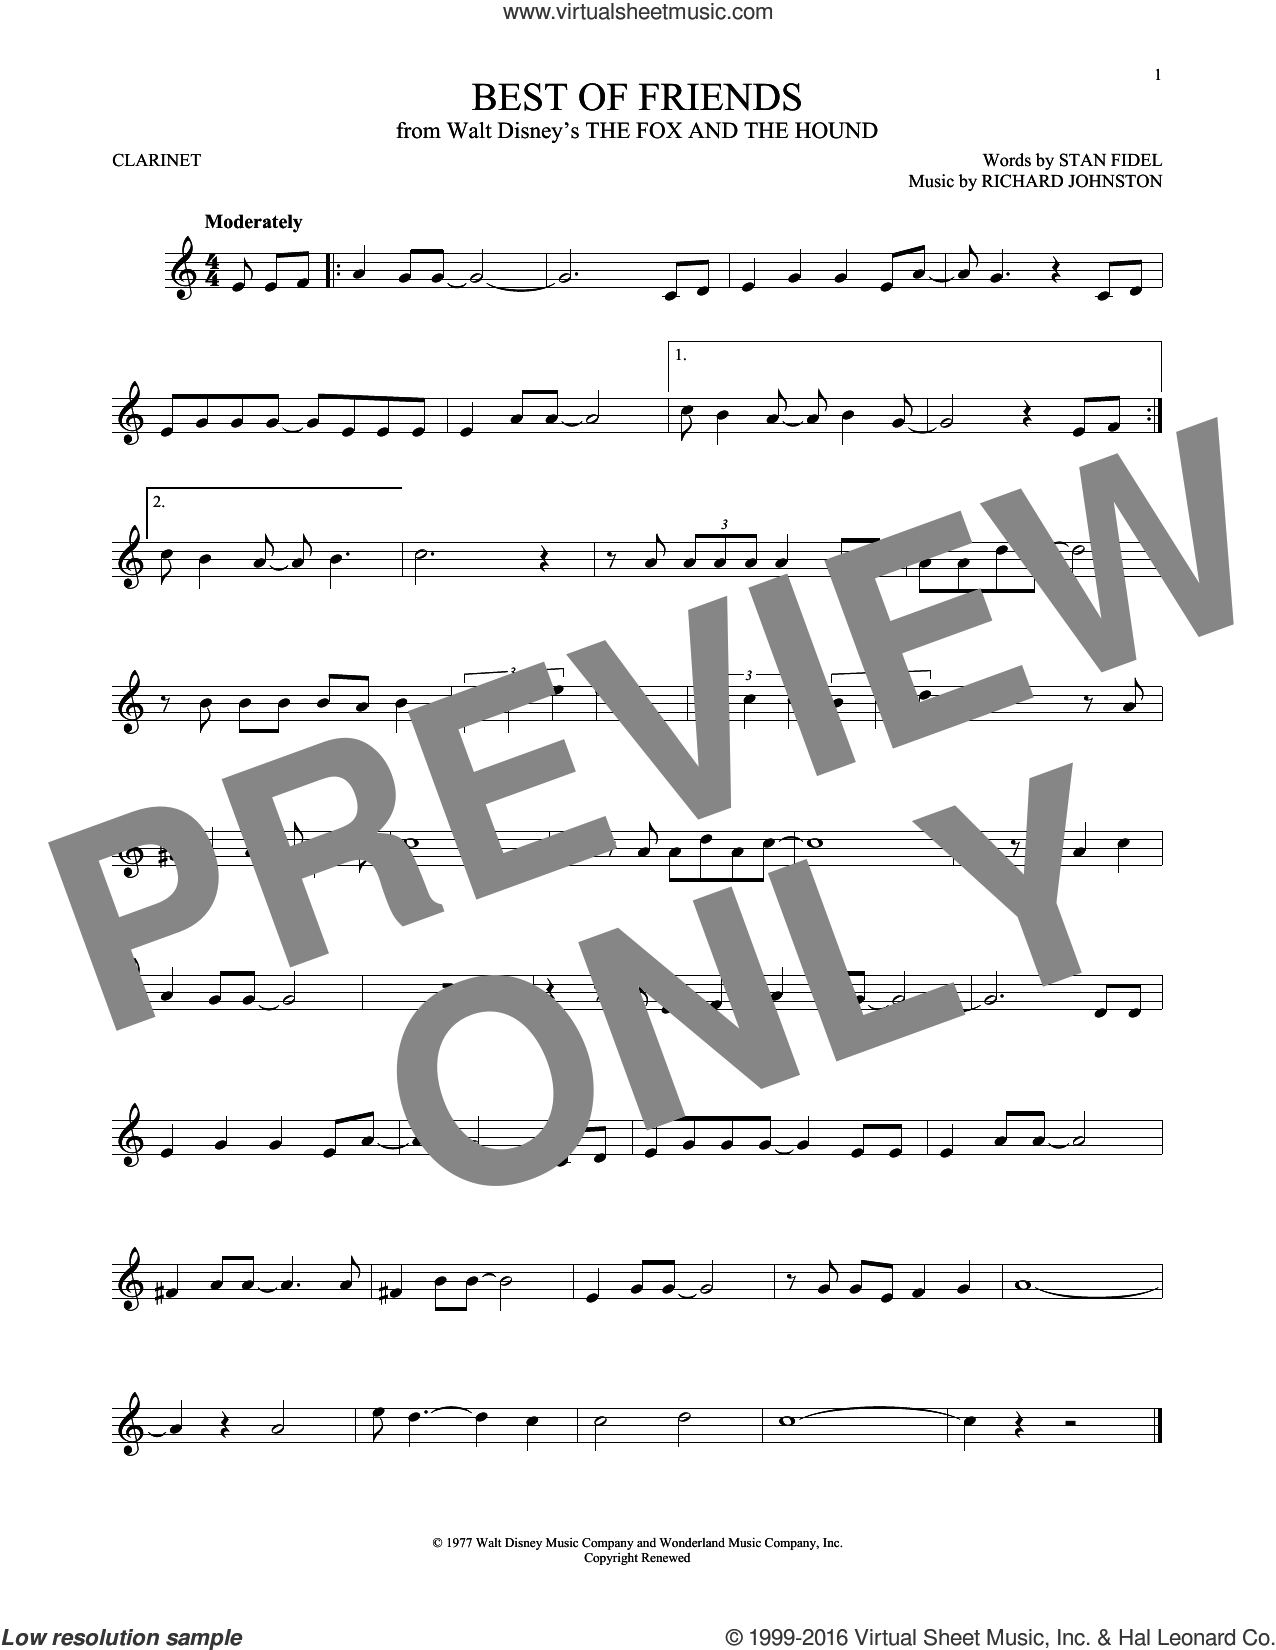 Best Of Friends sheet music for clarinet solo by Stan Fidel